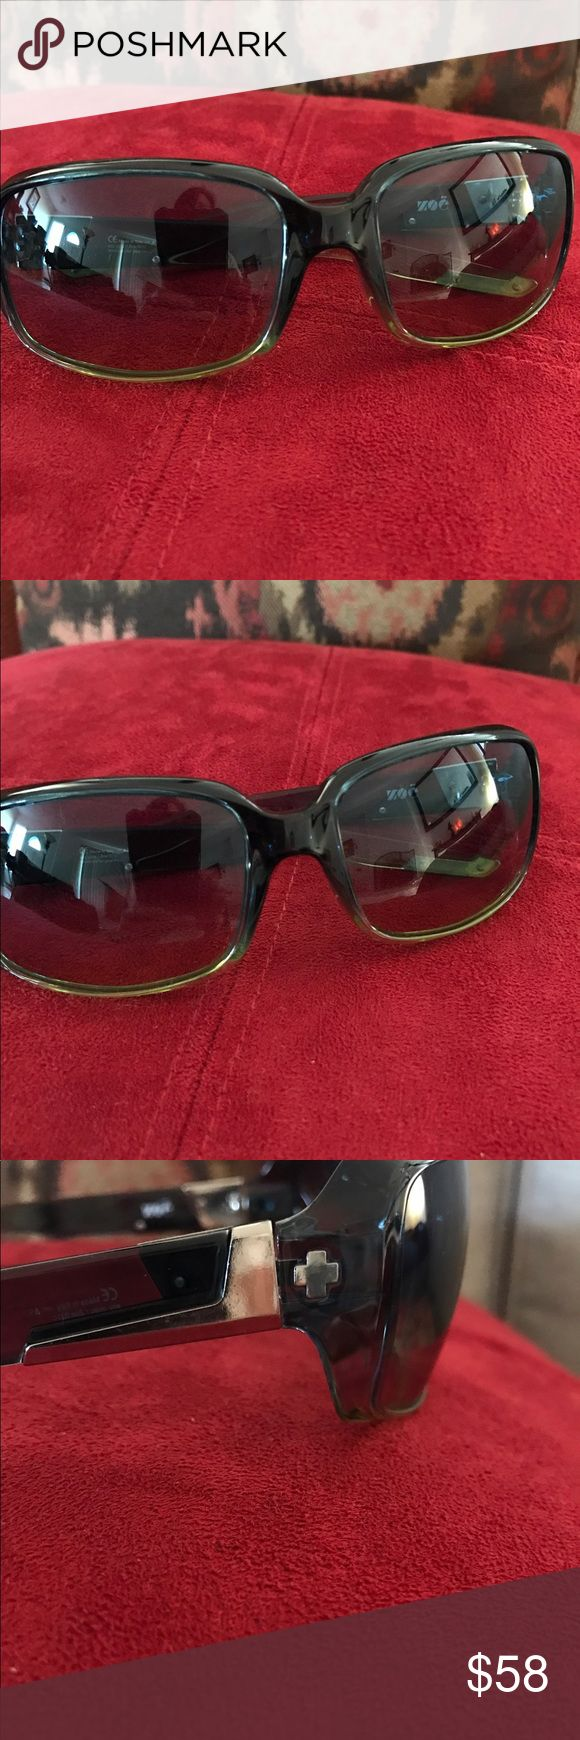 Spy sunglasses Too cool for words gently loved in great condition. Green frames if you have any questions please ask Accessories Sunglasses